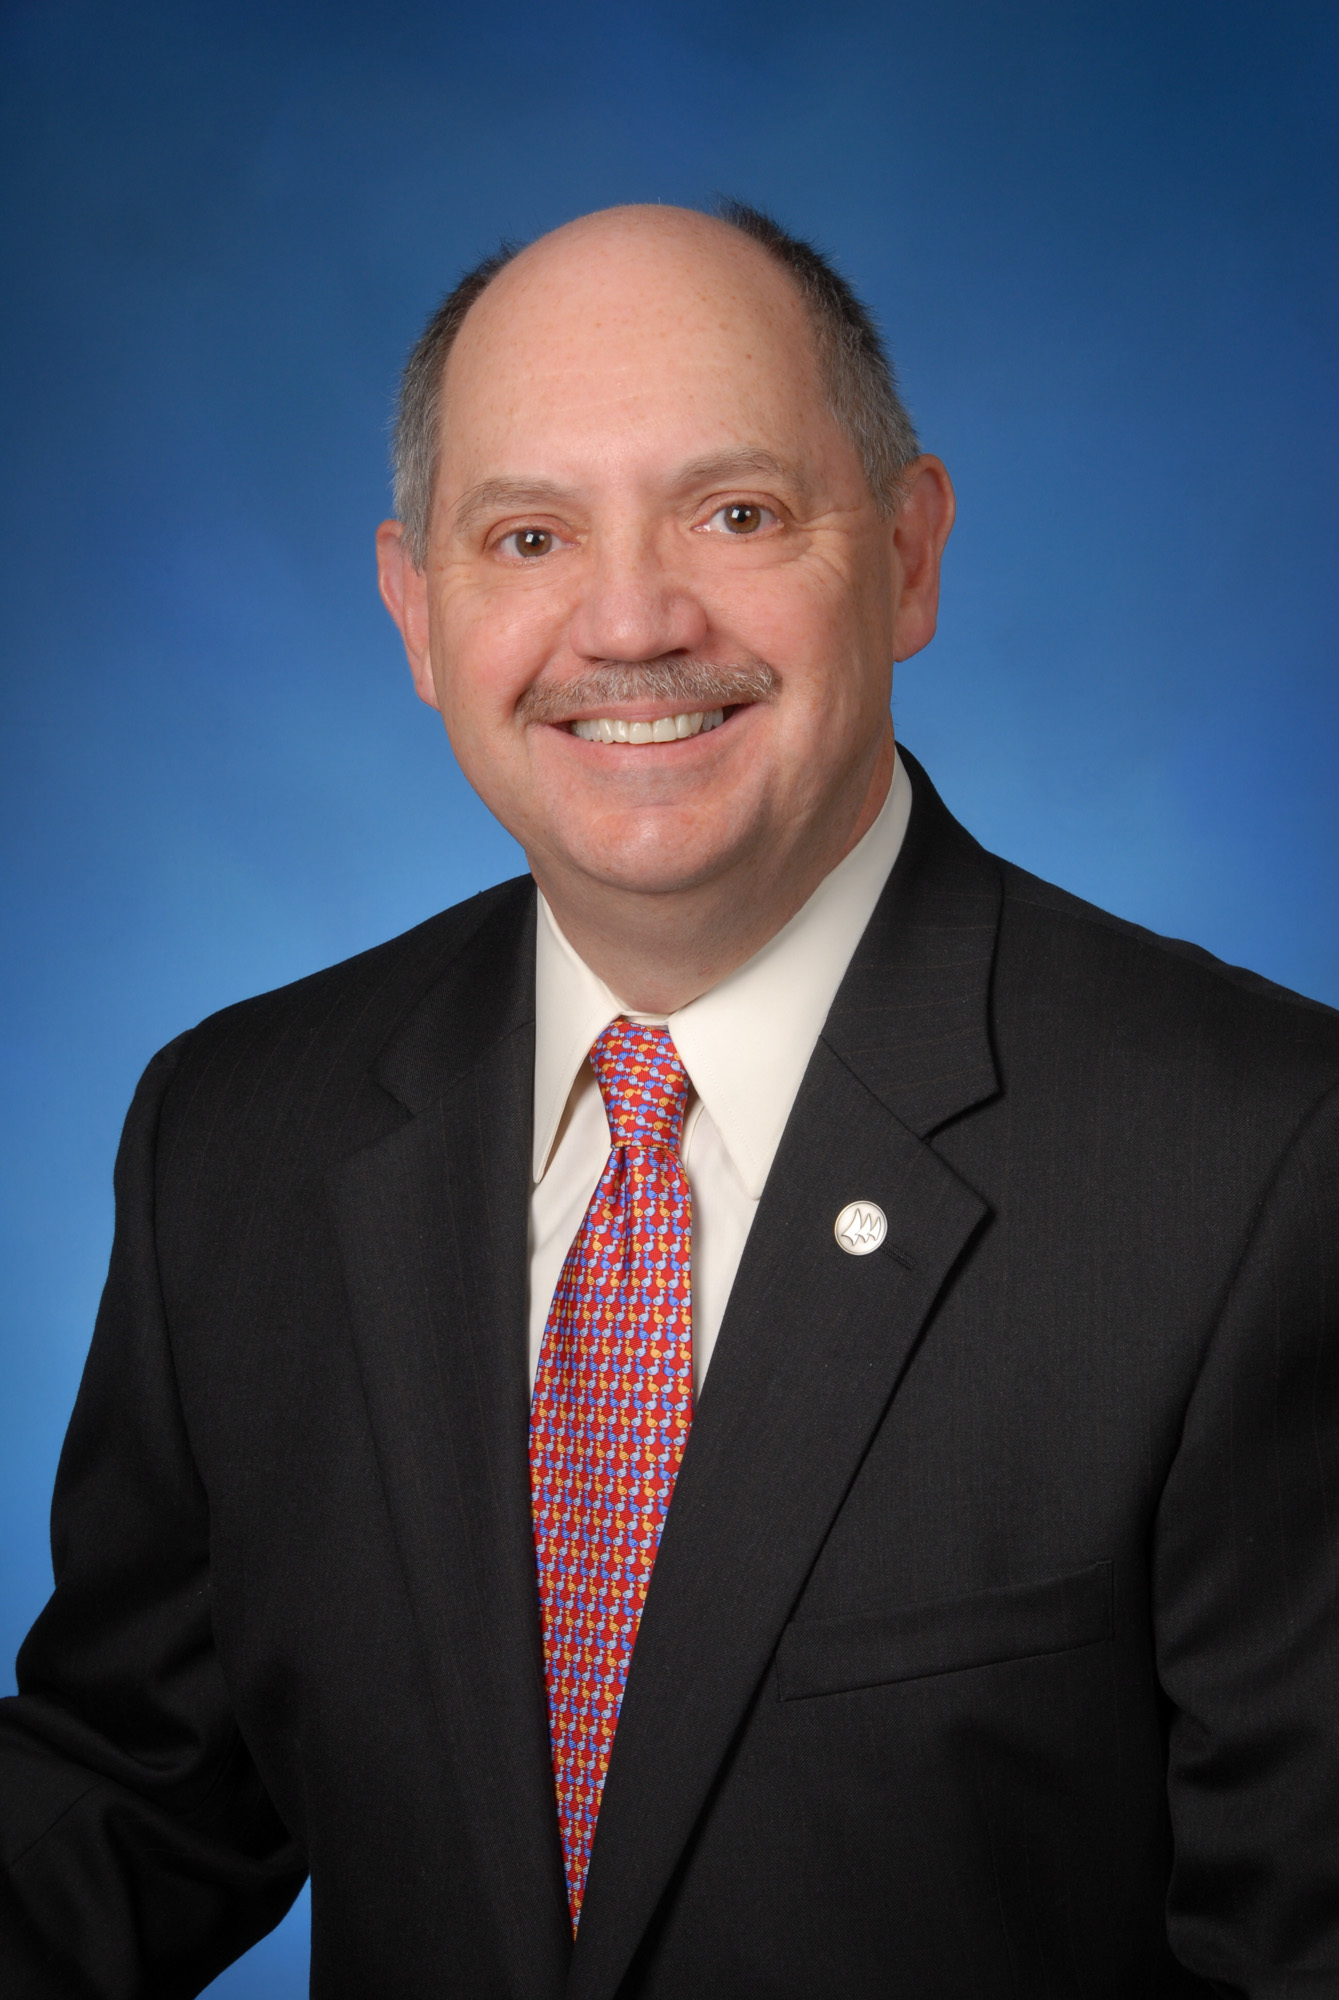 William Kennedy Joins the Salin Bank Business Banking Team as Portfolio Manager. (Photo: Business Wire)